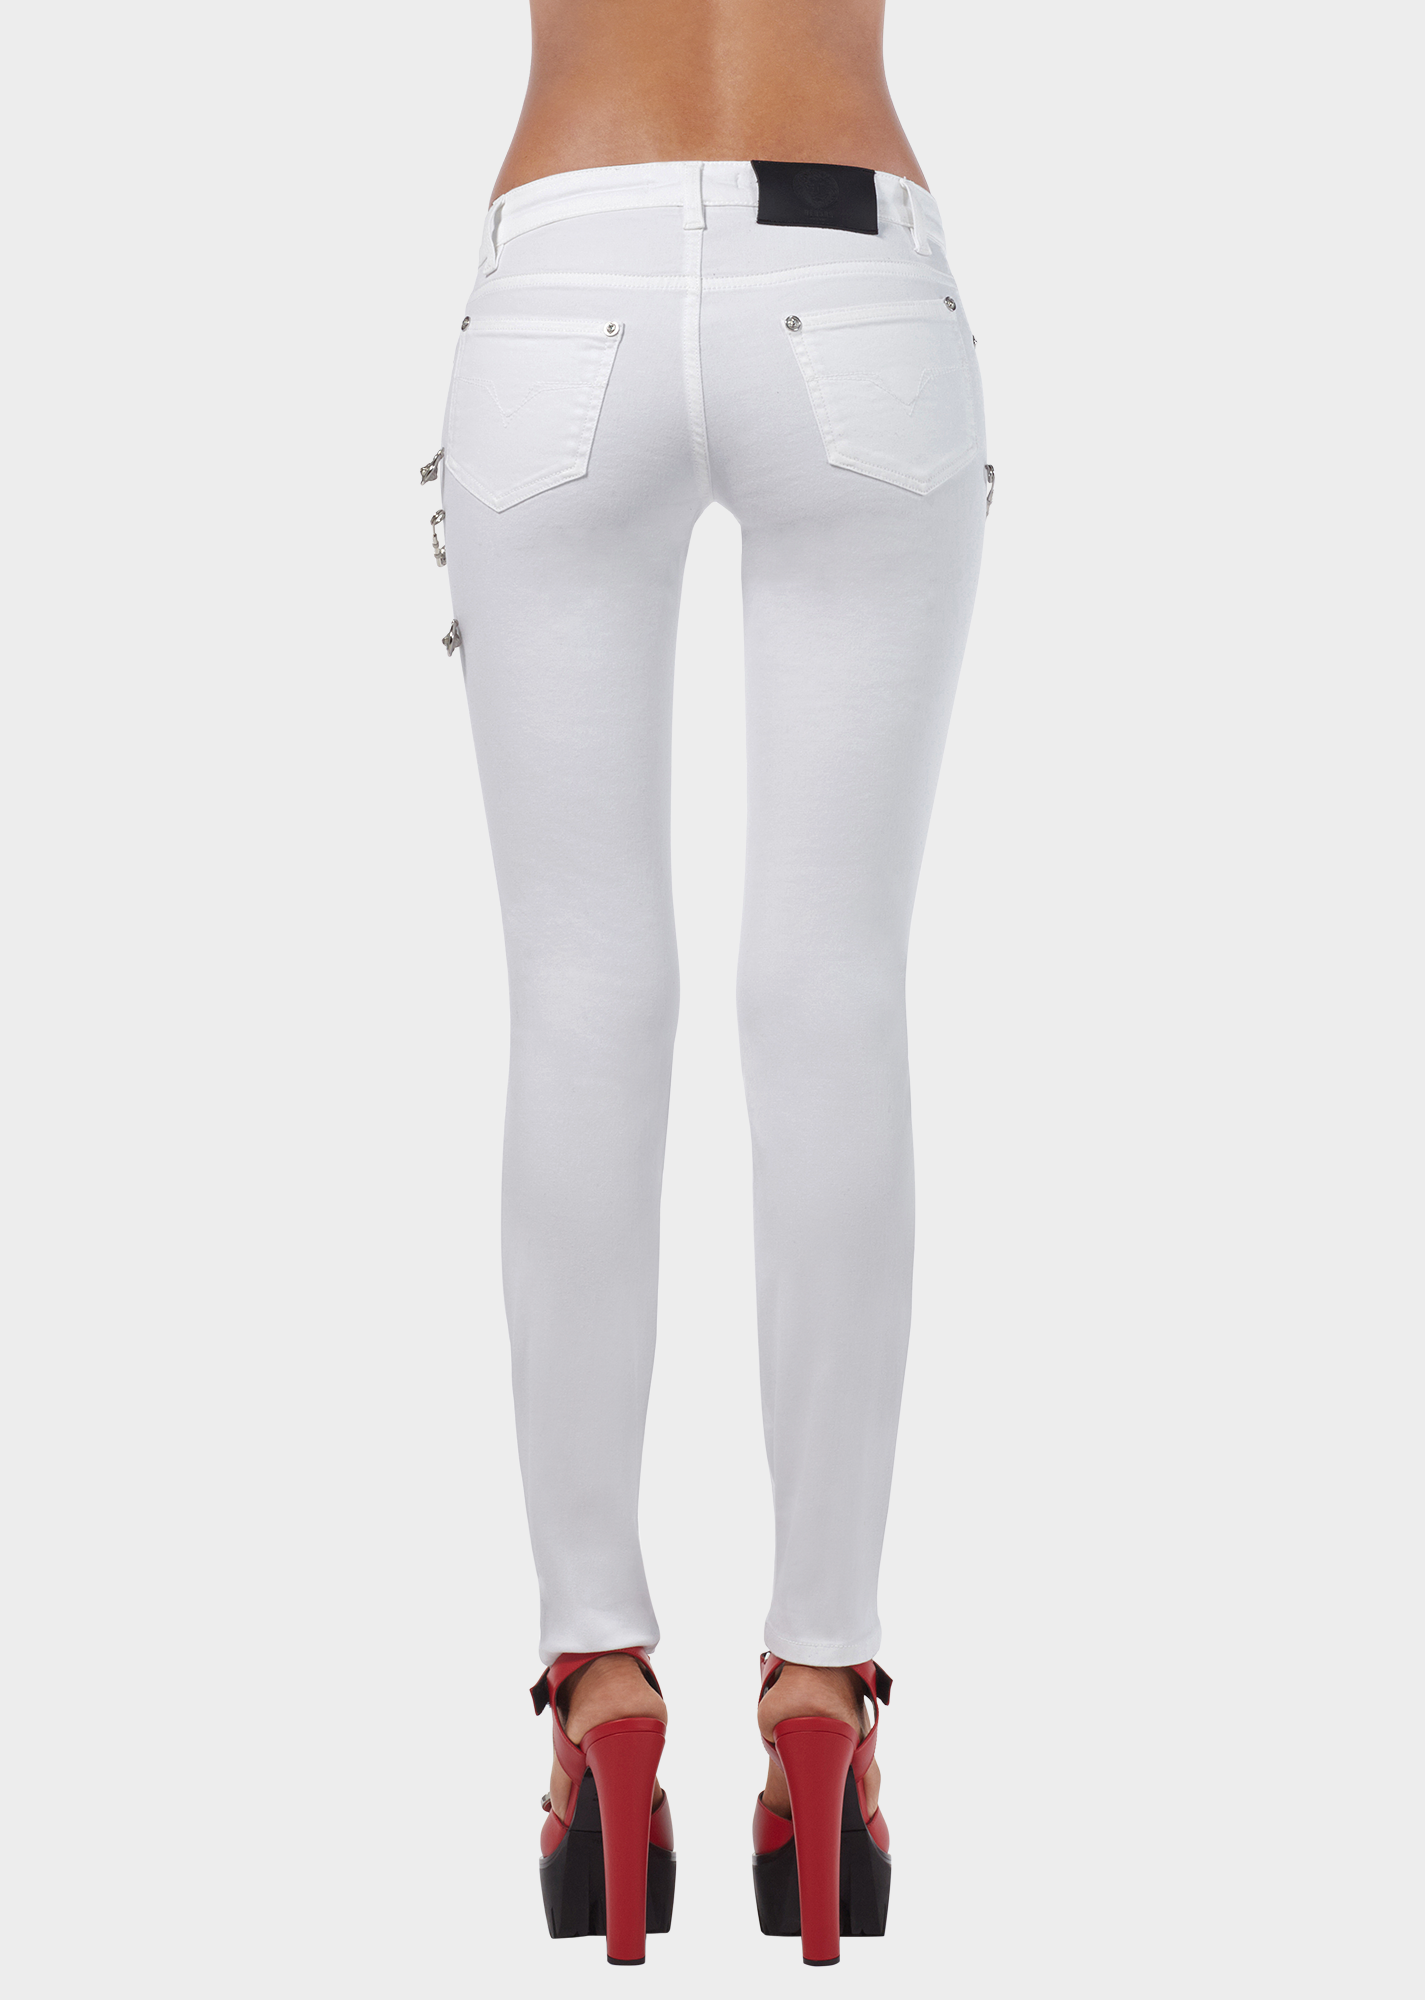 354aa9b5a74de Safety Pin Cropped Skinny Jeans - White Pants   jeans